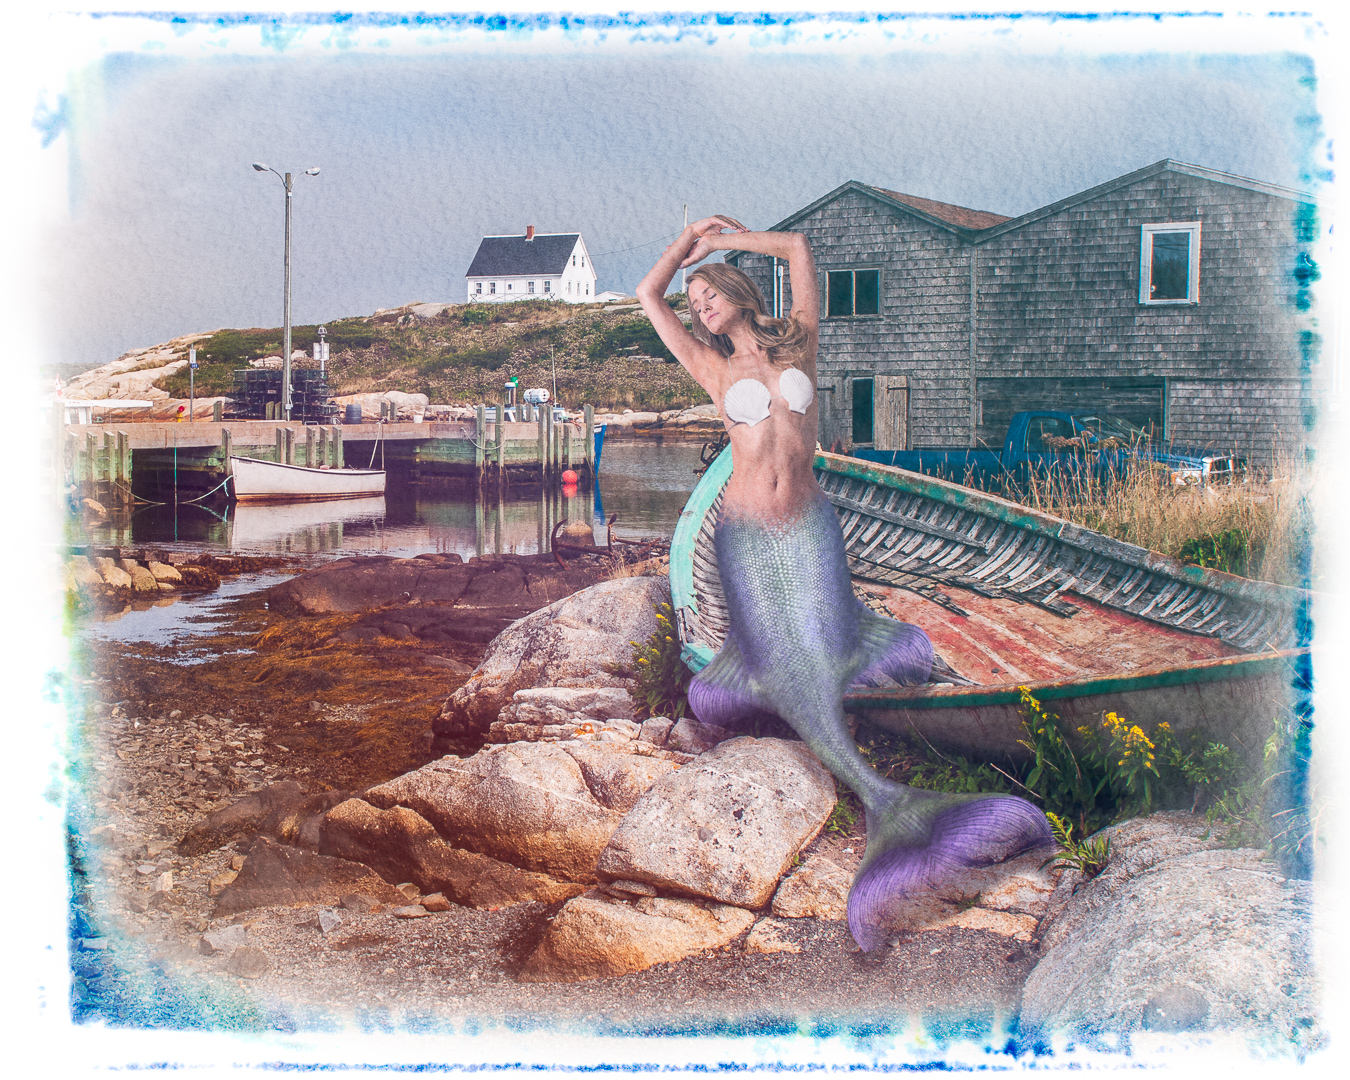 Jon Clarke – Peggys Cove Mermaid – HM